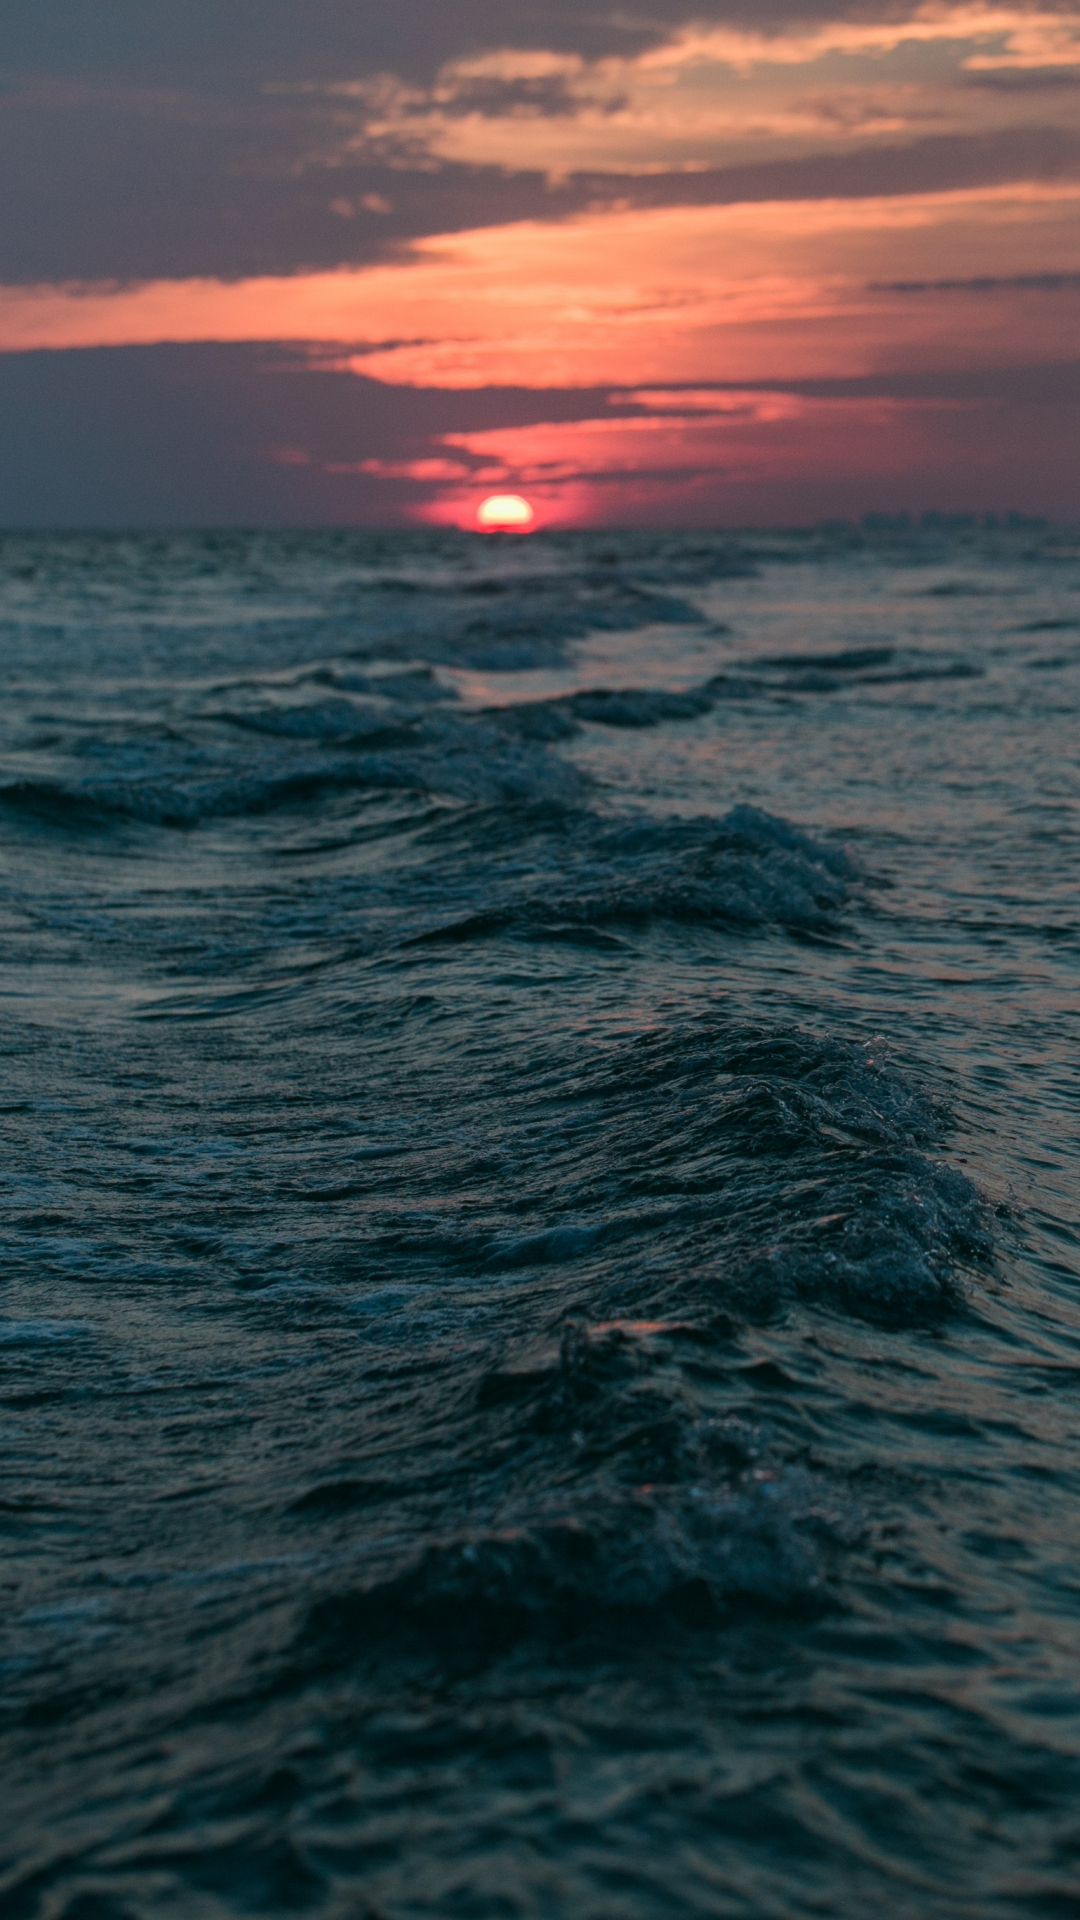 sunset, ocean, beach iphone wallpaper - idrop news